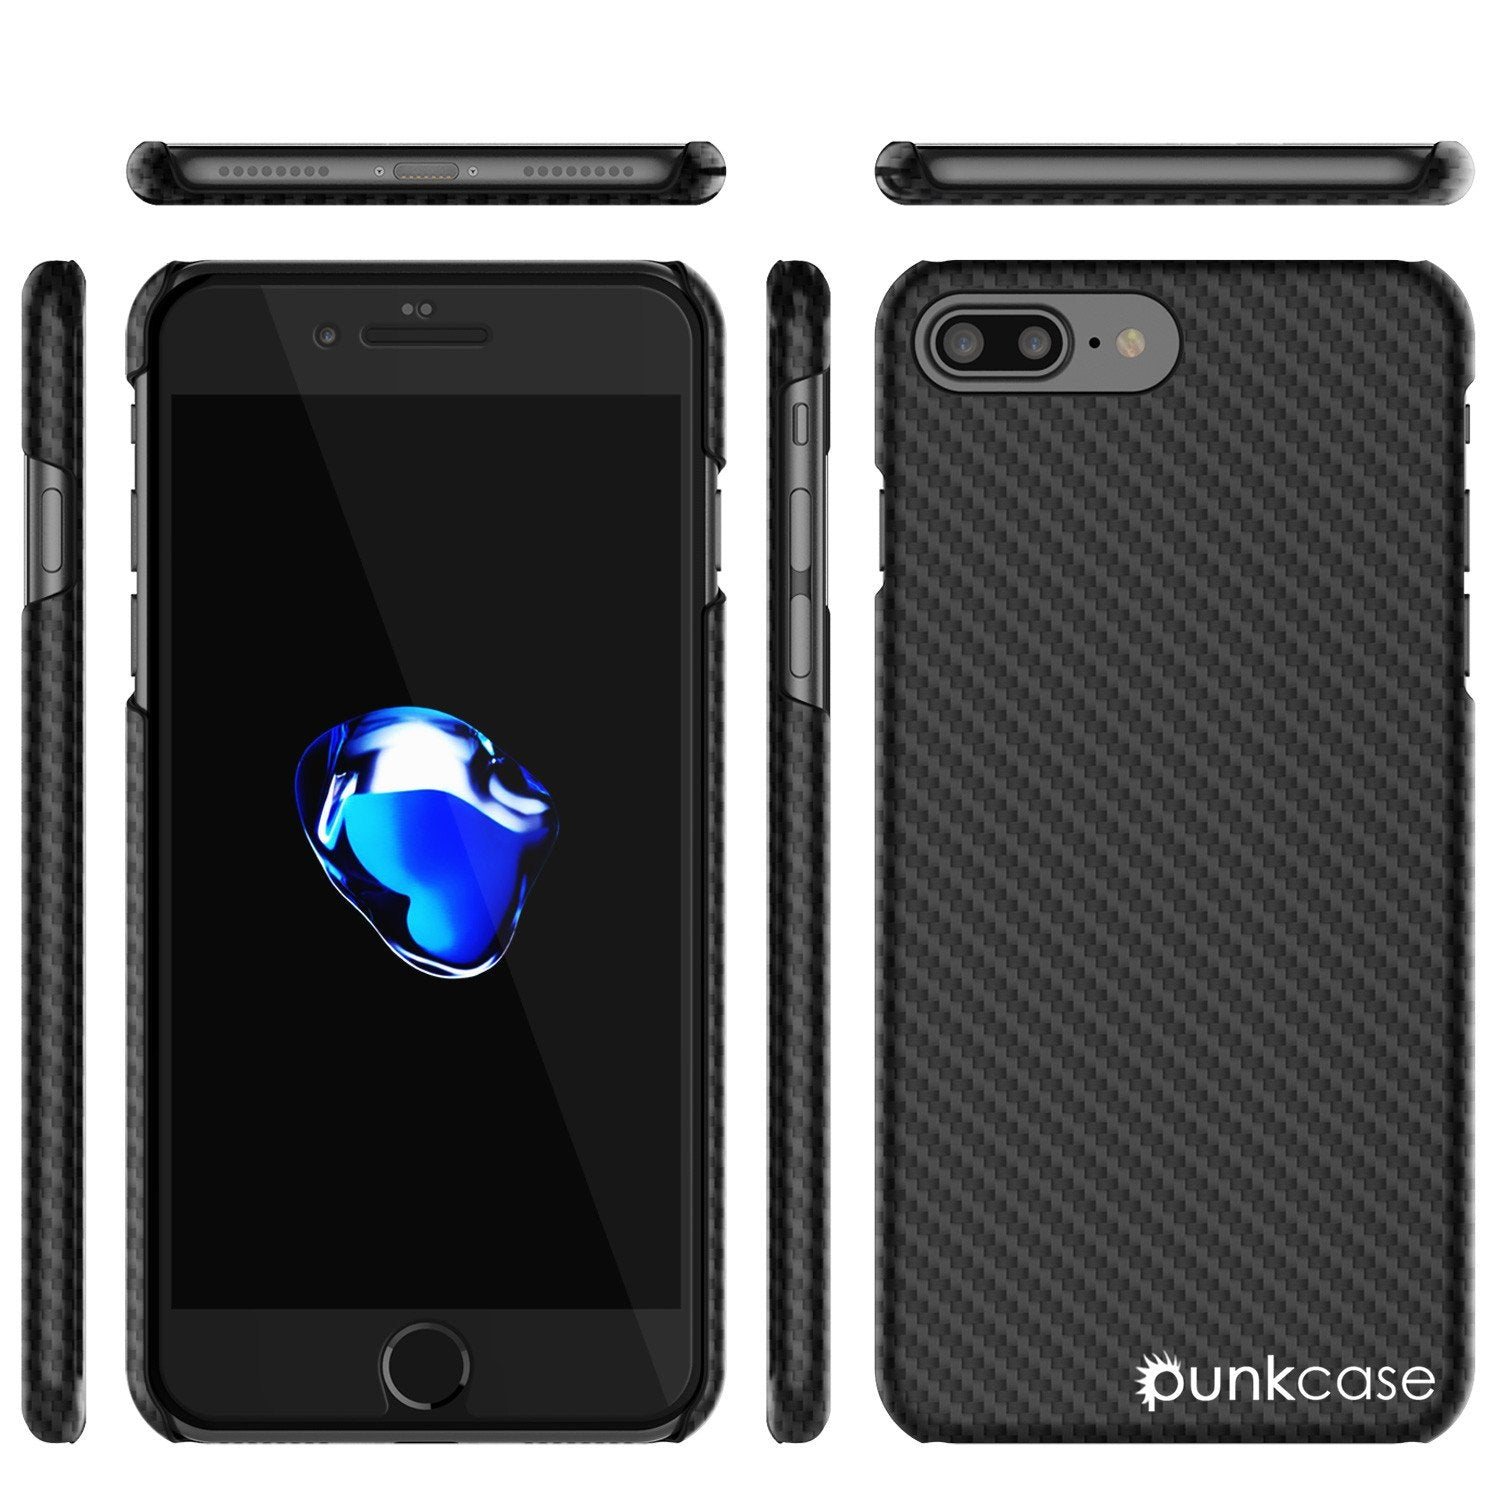 iPhone 7+ Plus Case Punkcase Carbonshield Shockproof Ultrathin Case Cover